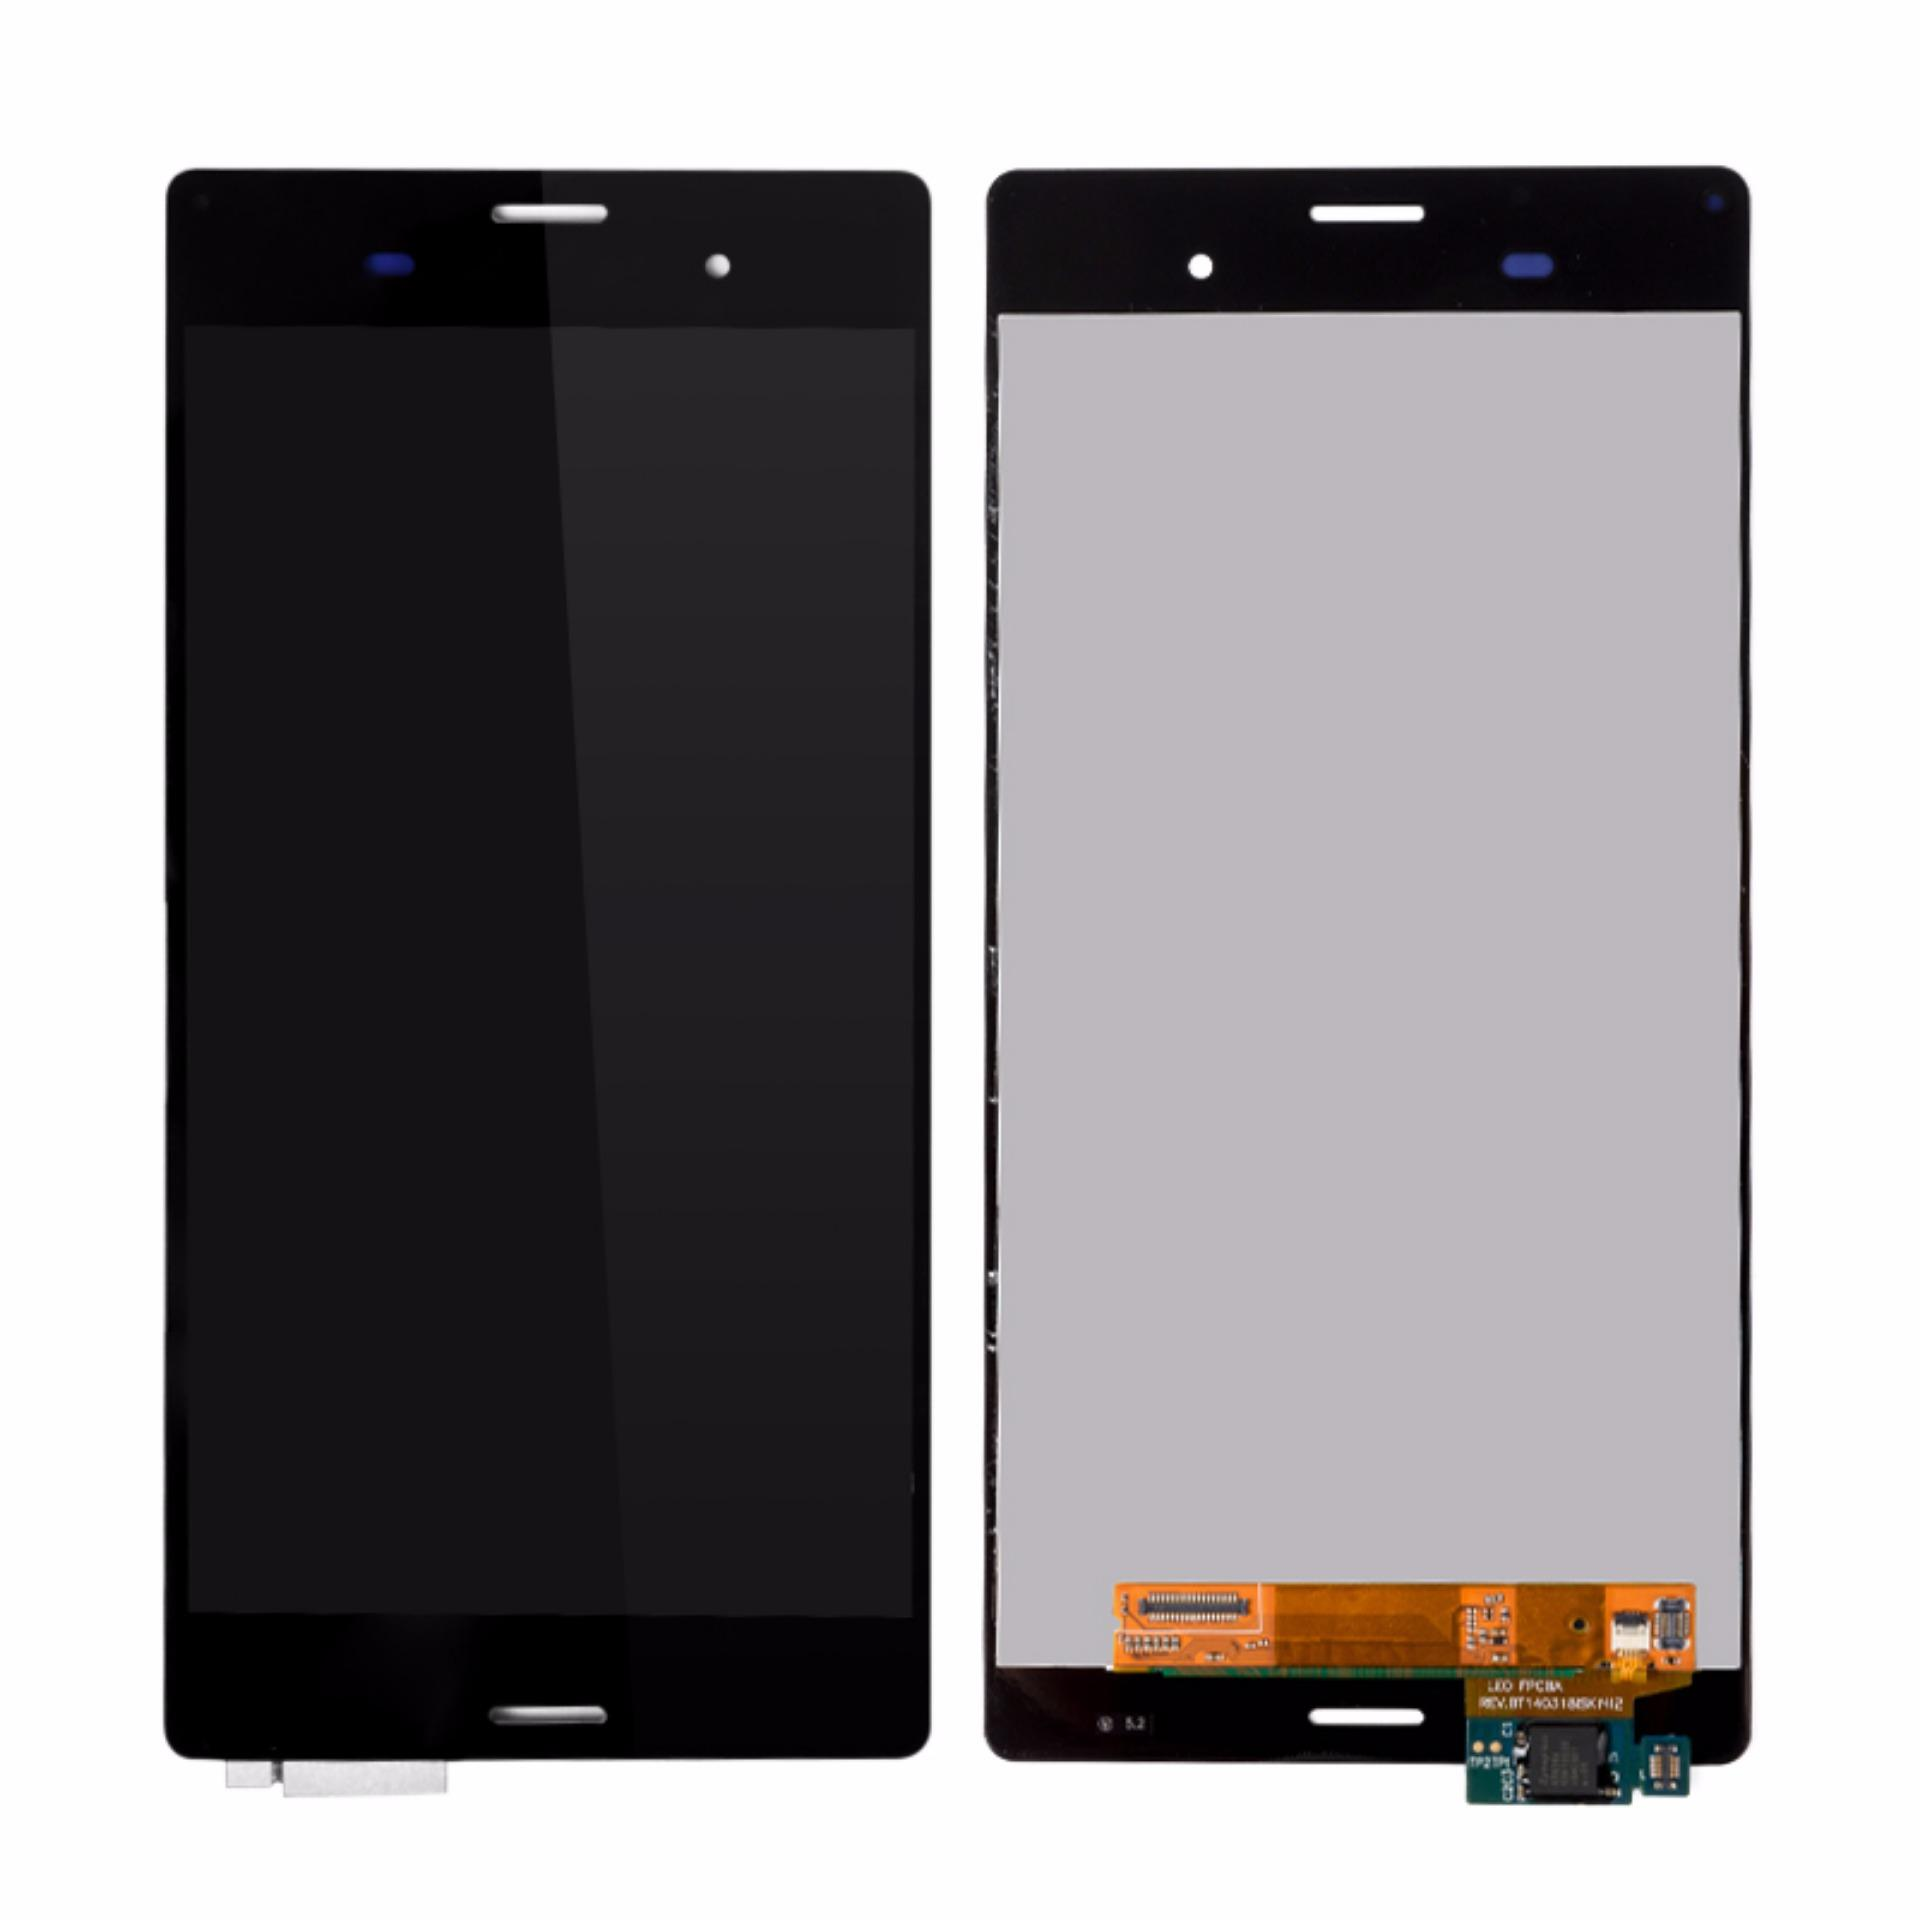 LCD Display Touch Screen For Sony Xperia Z3 Mini Compact D5803 D5833 Digitizer Assembly - intl